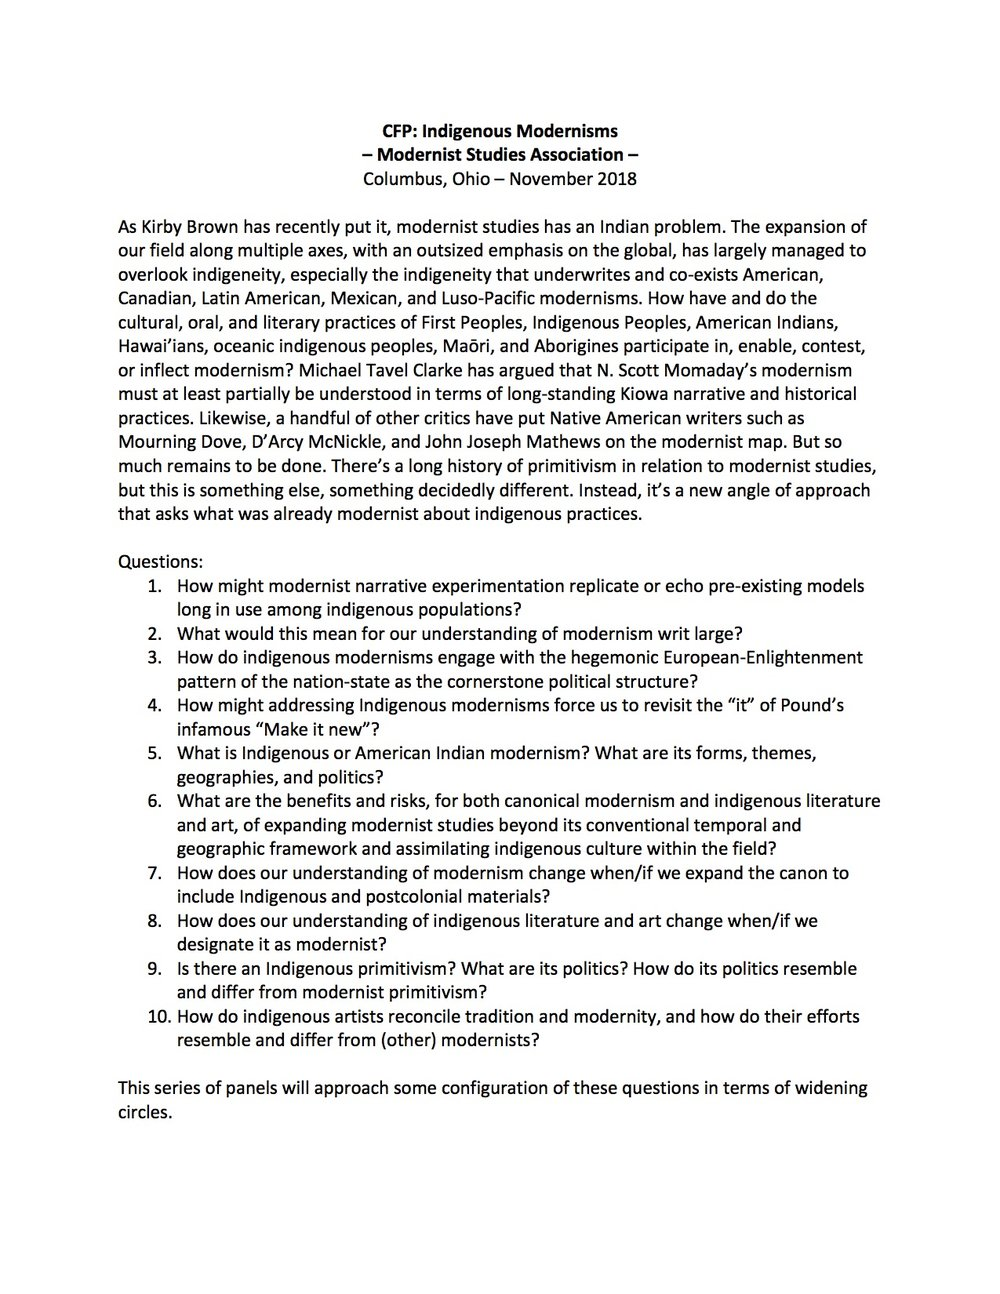 CFP - Indigenous Modernisms 1.jpg